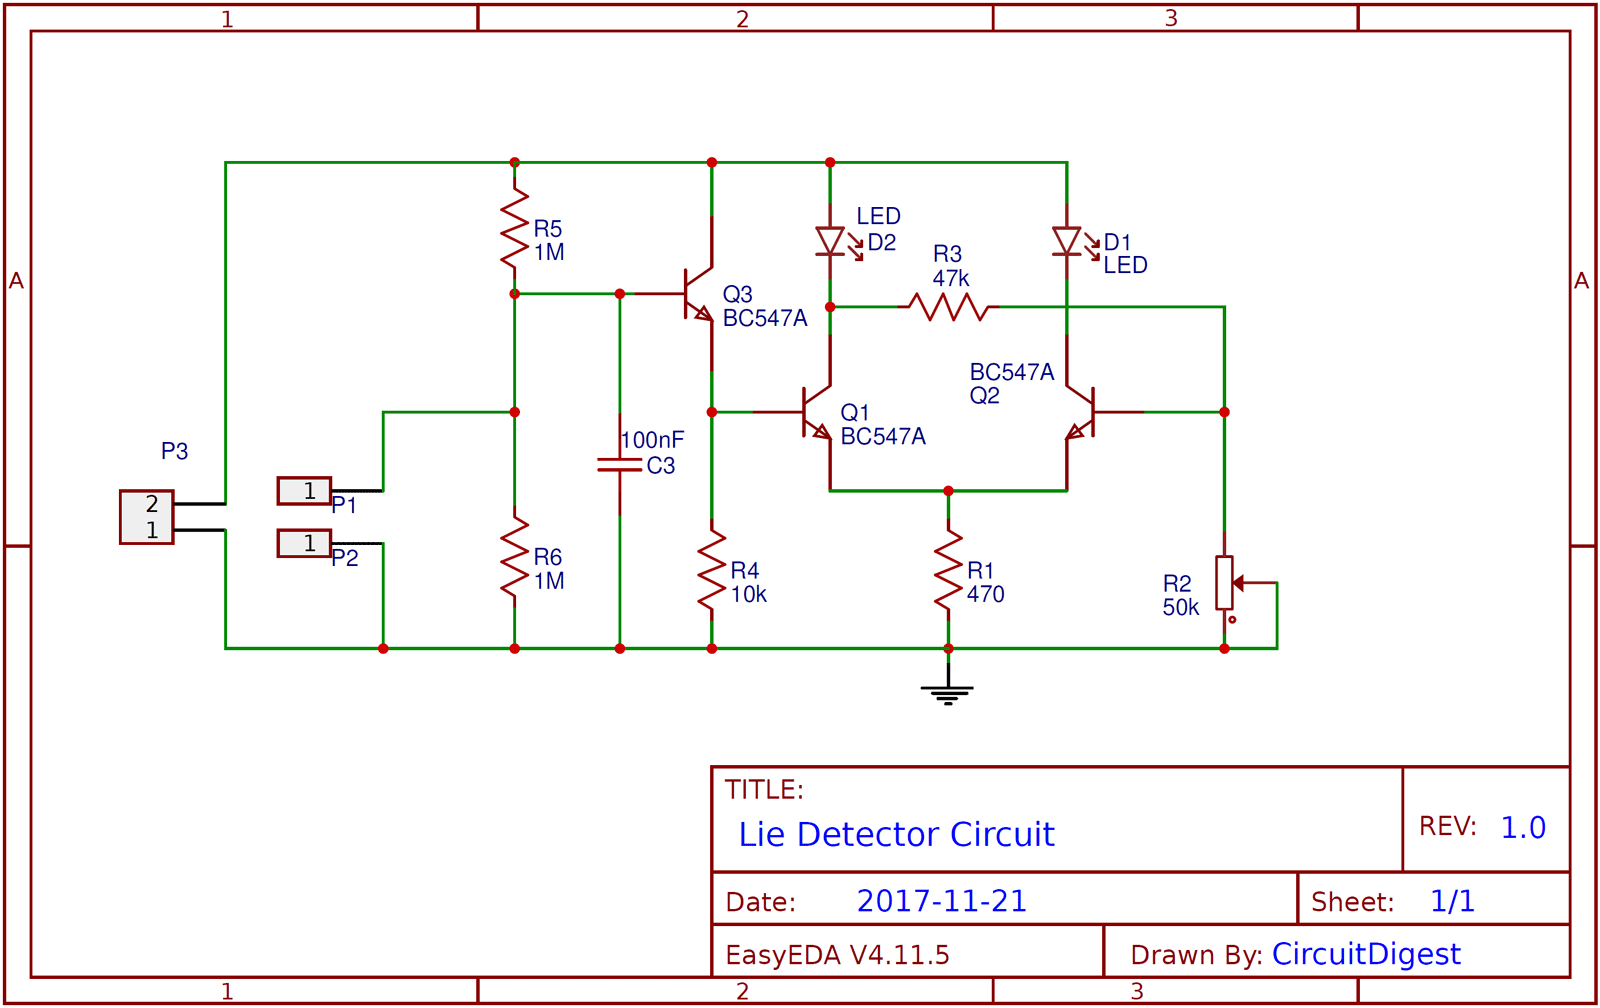 Surprising A Simple Circuit Diagram Wiring Library Wiring 101 Akebretraxxcnl